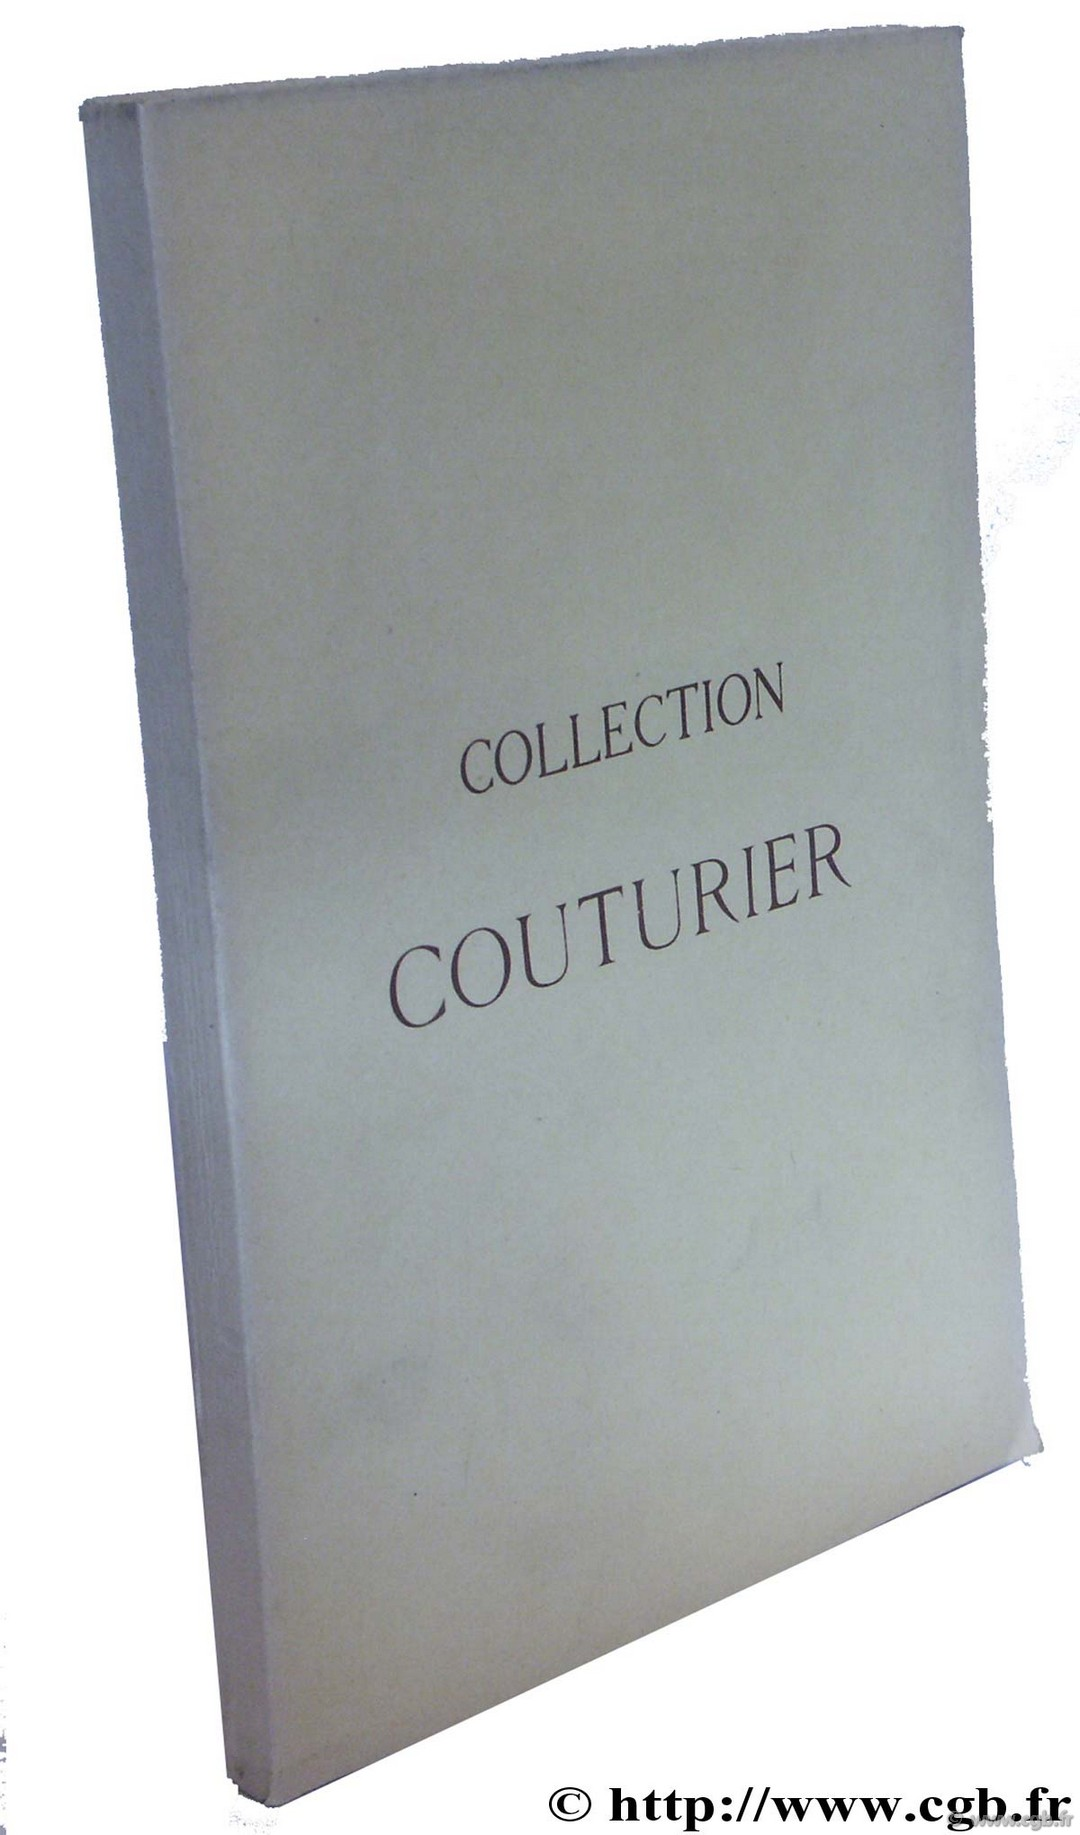 Collection Couturier